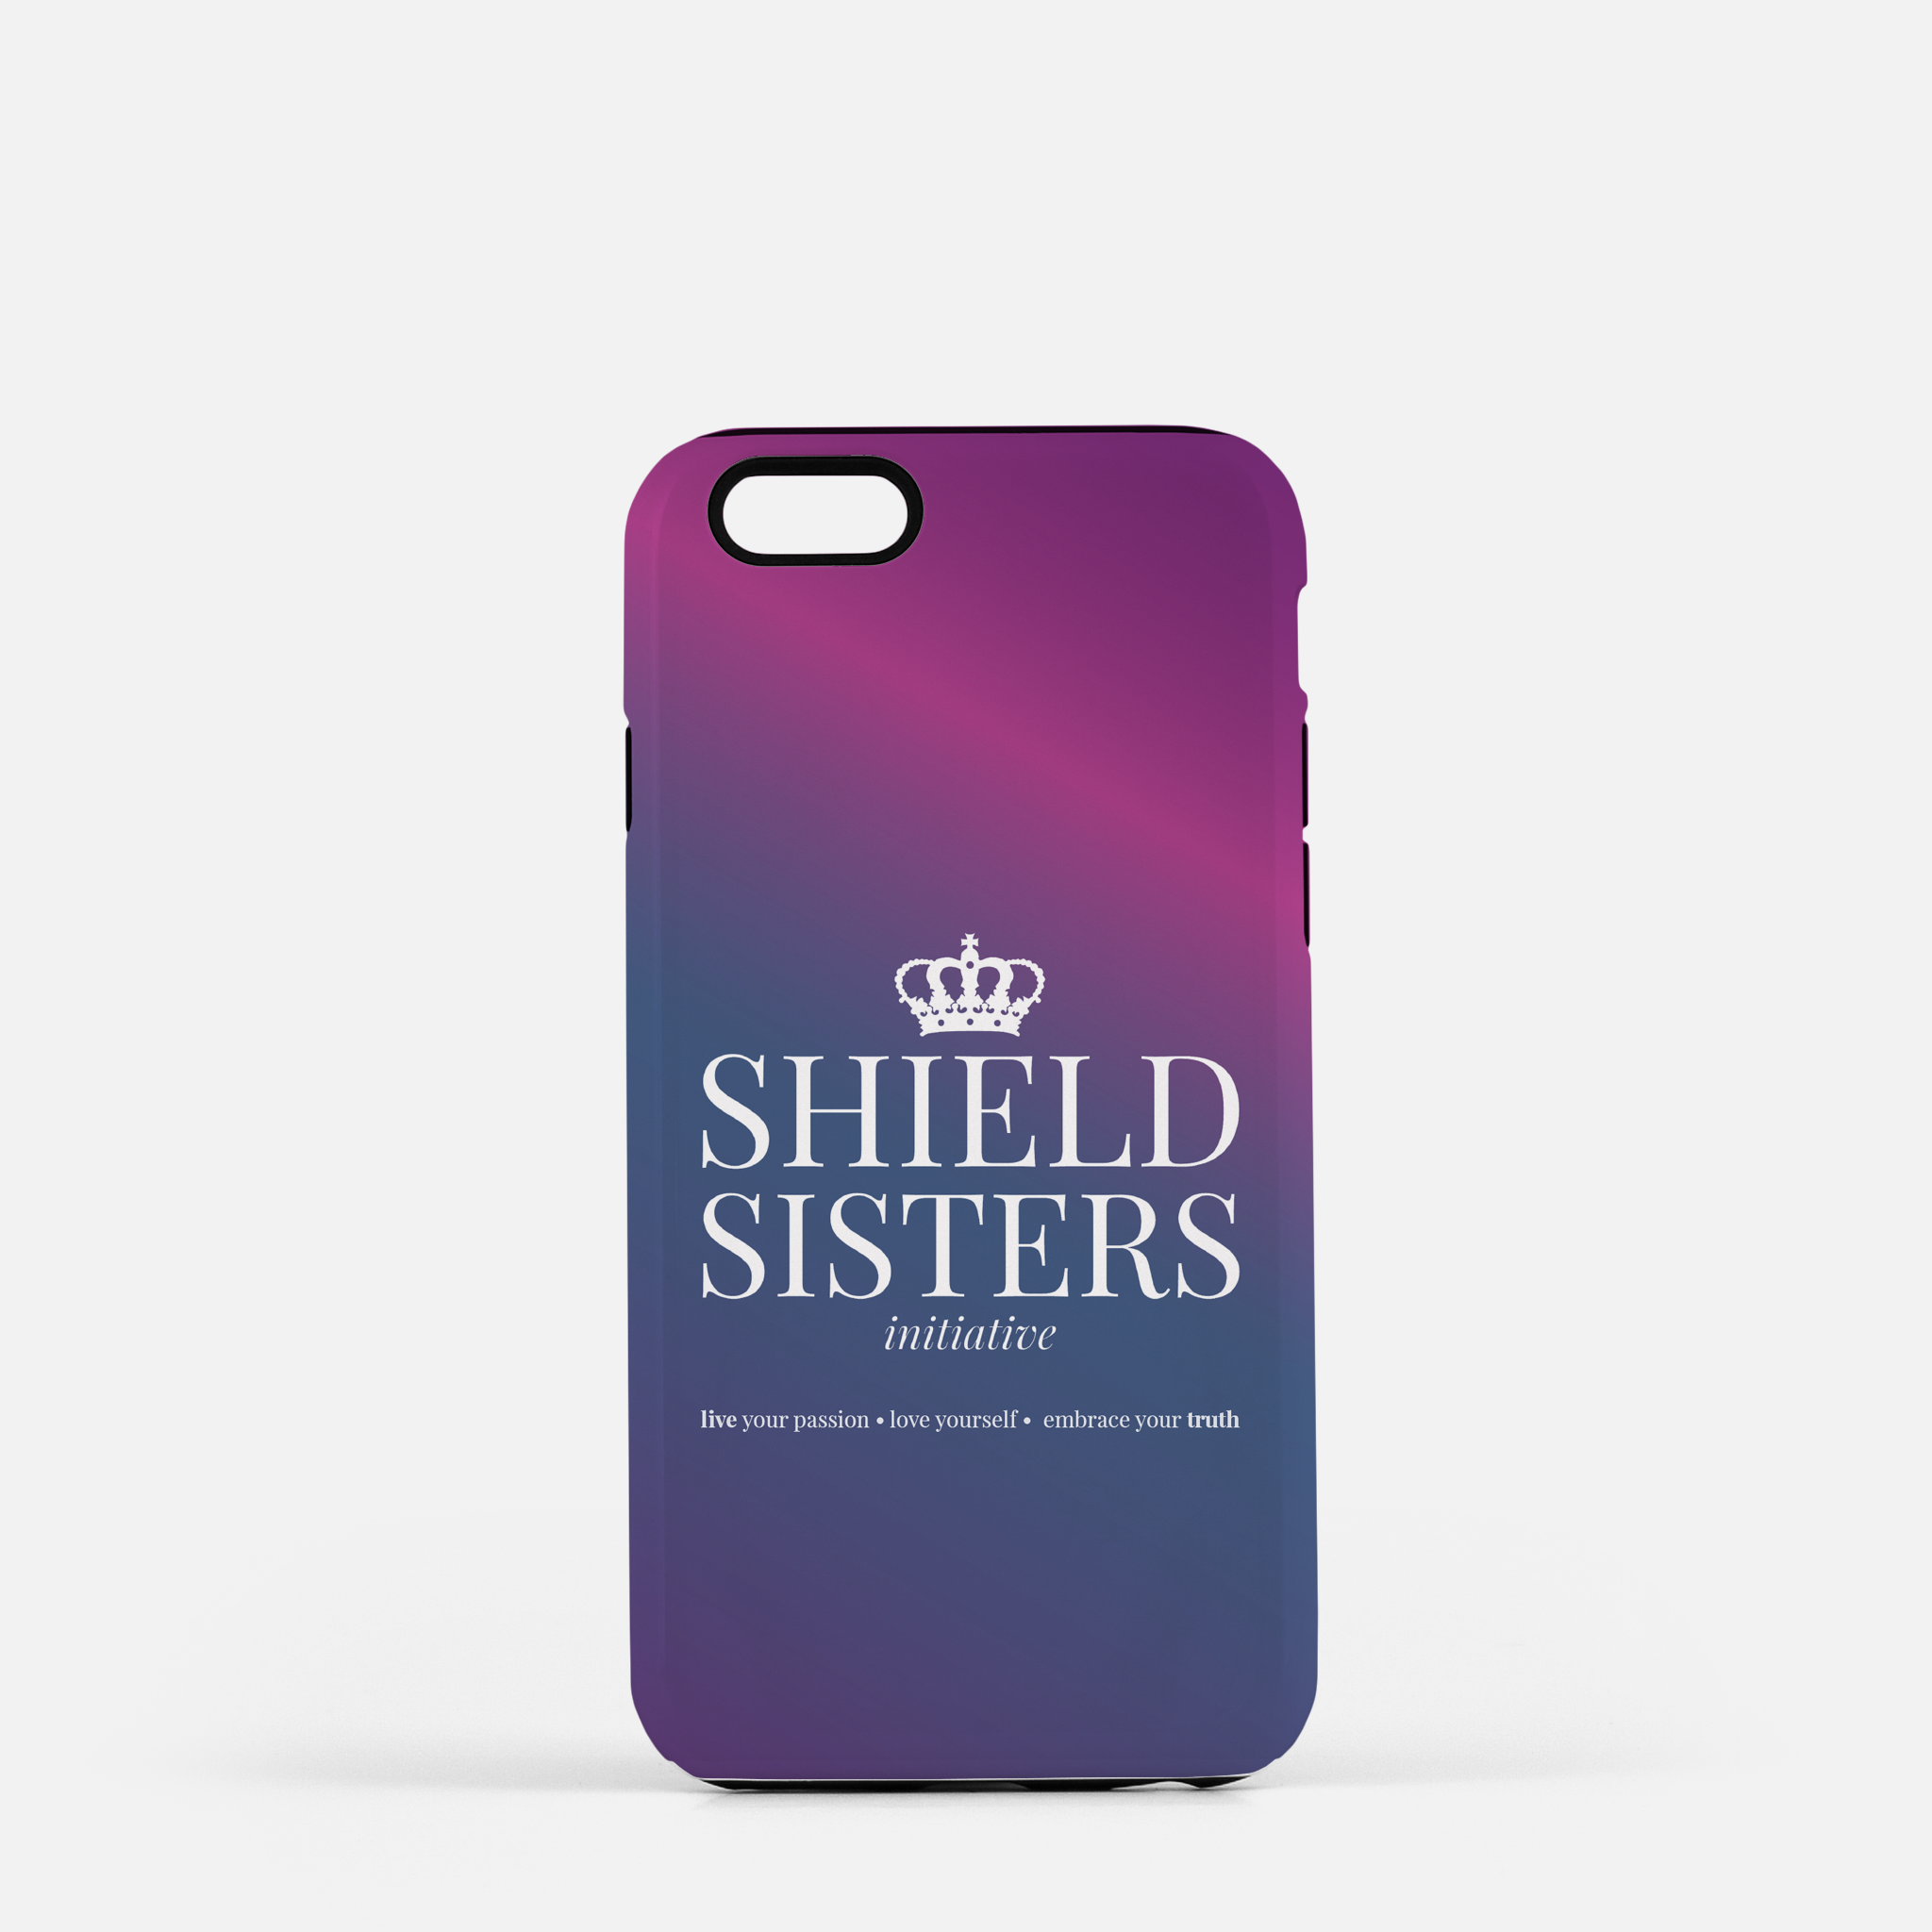 home shield sisters initiative every w is a strong w capable of self love self confidence and achieving the goals in the deepest corners of her heart